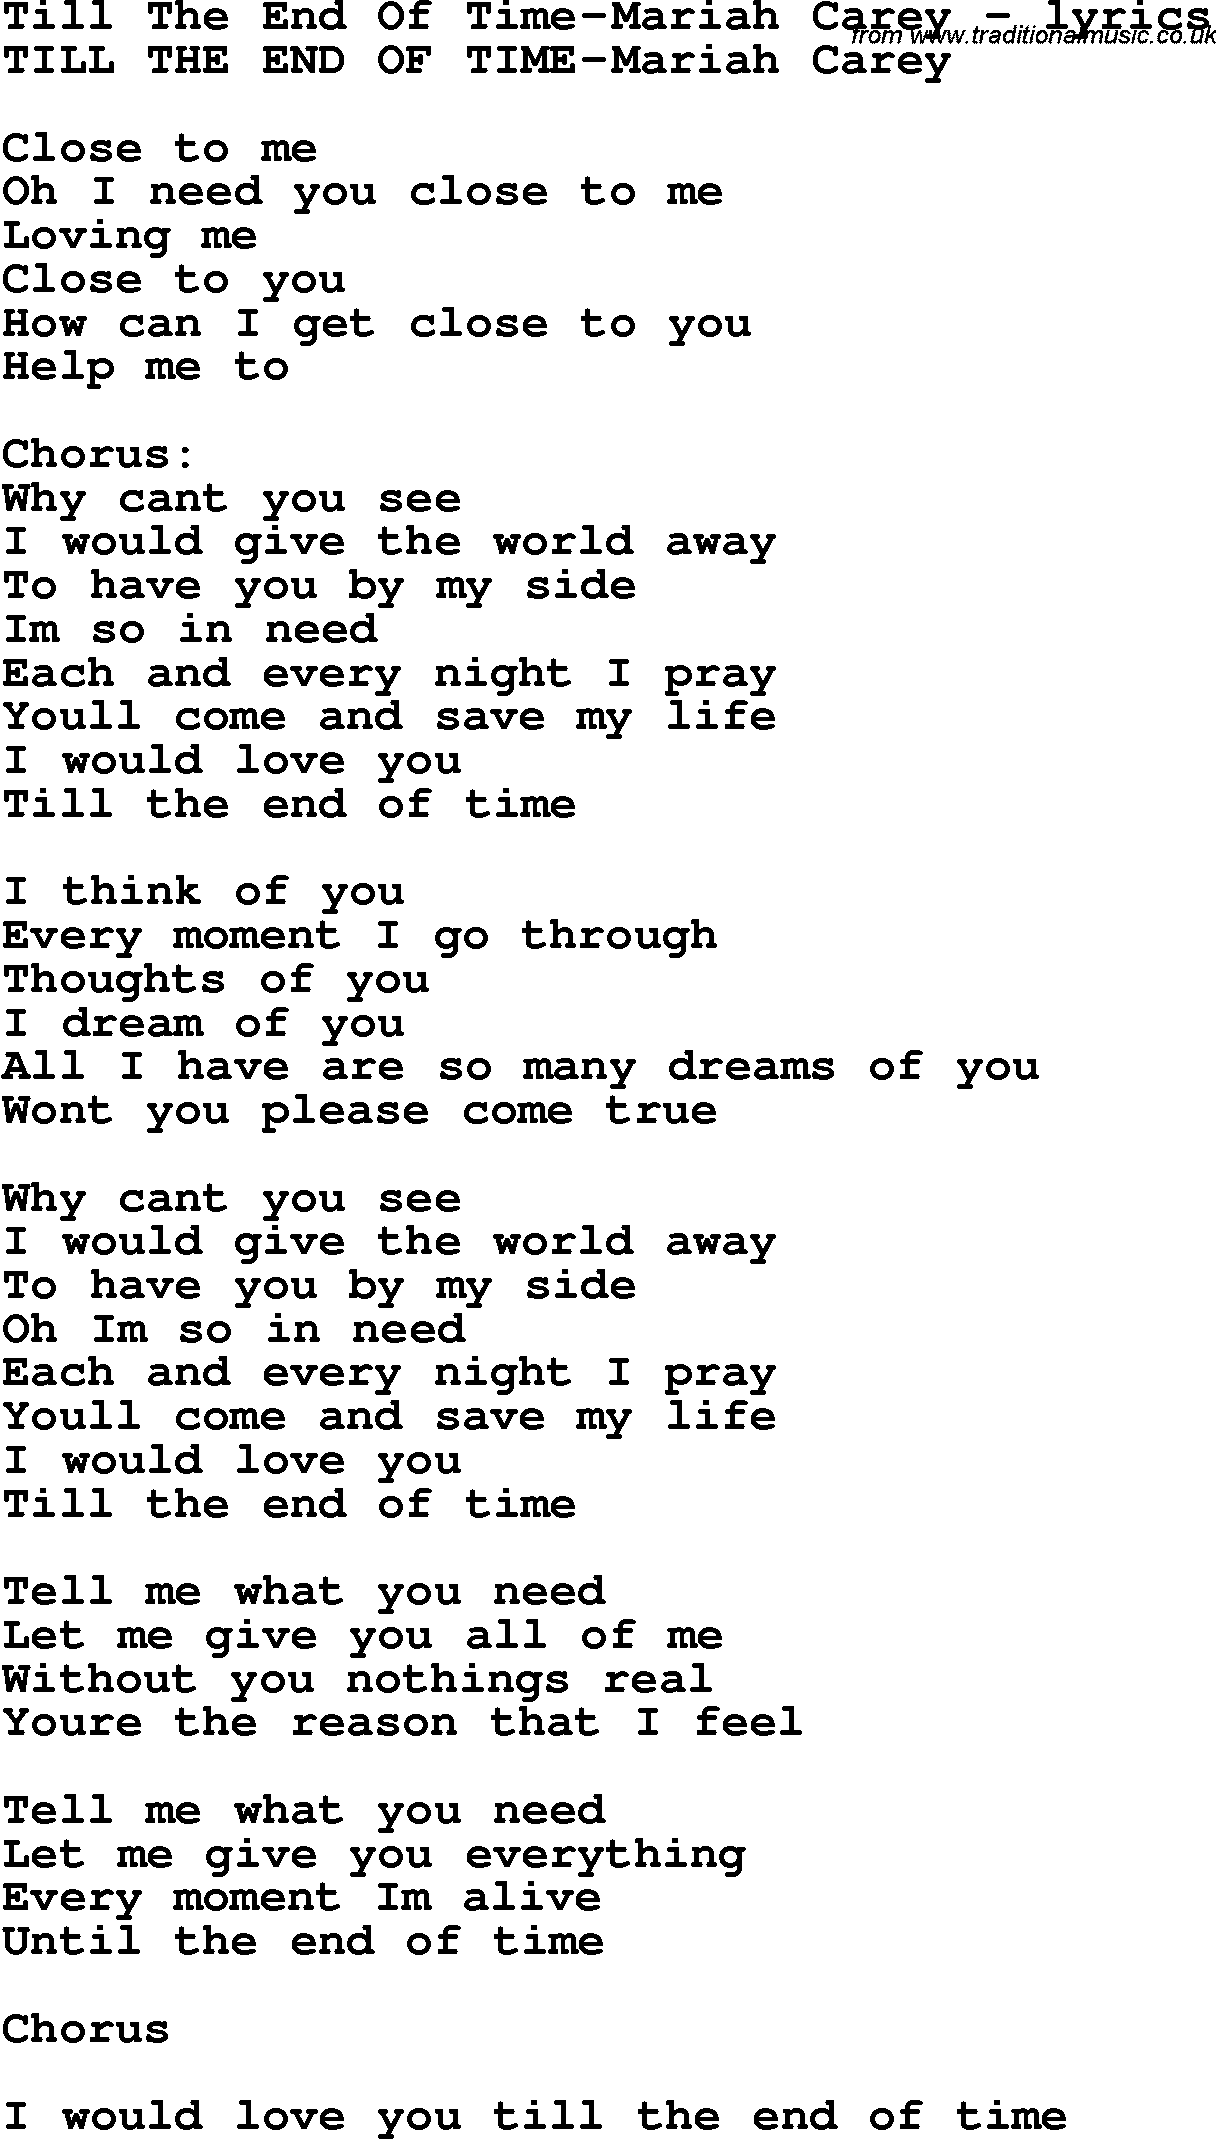 in the end lyrics: